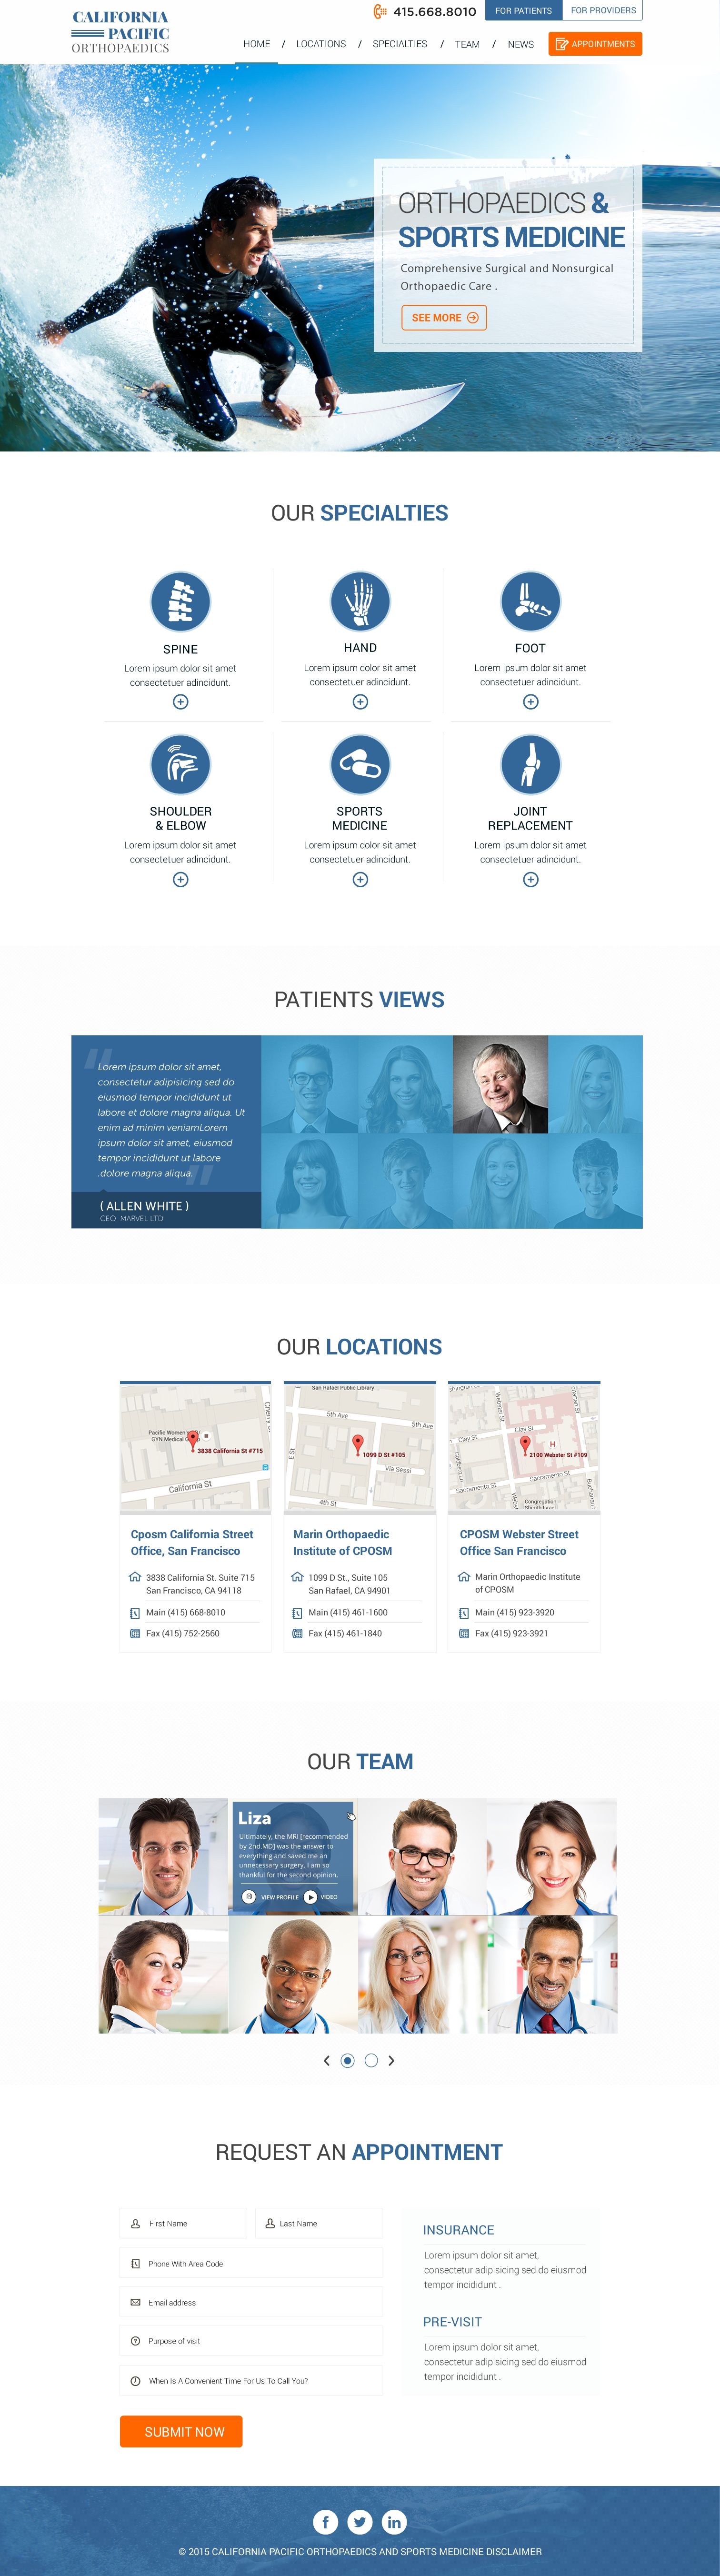 Pin By Axpertech On Our Work Sports Medicine Site Design Website Design